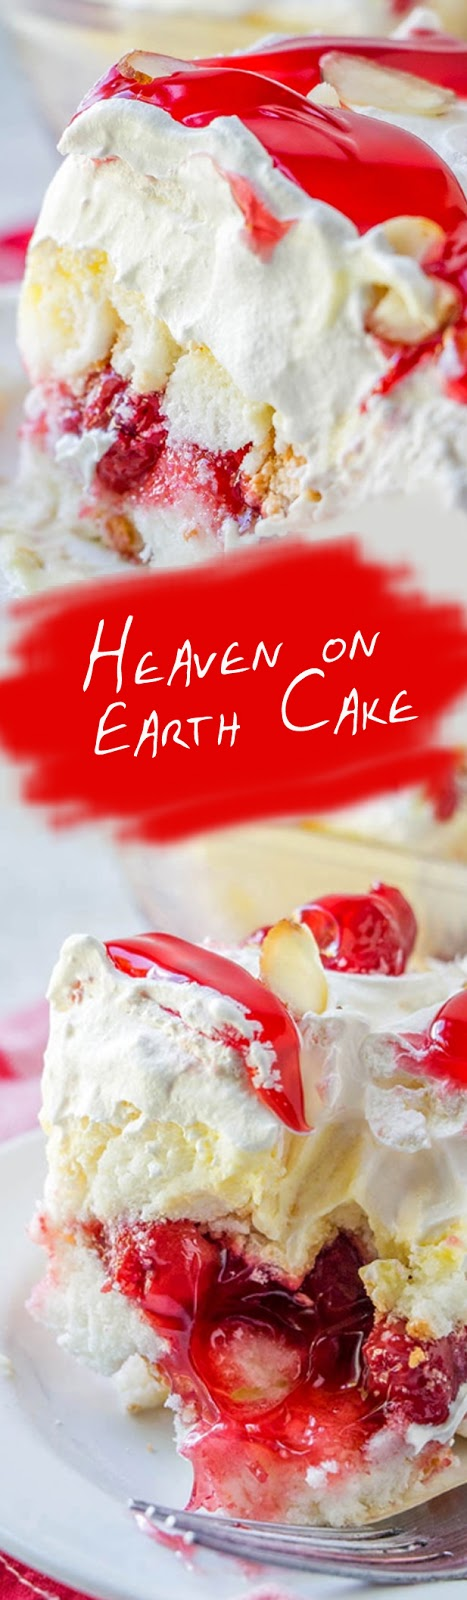 Recipe Heaven on Earth Cake